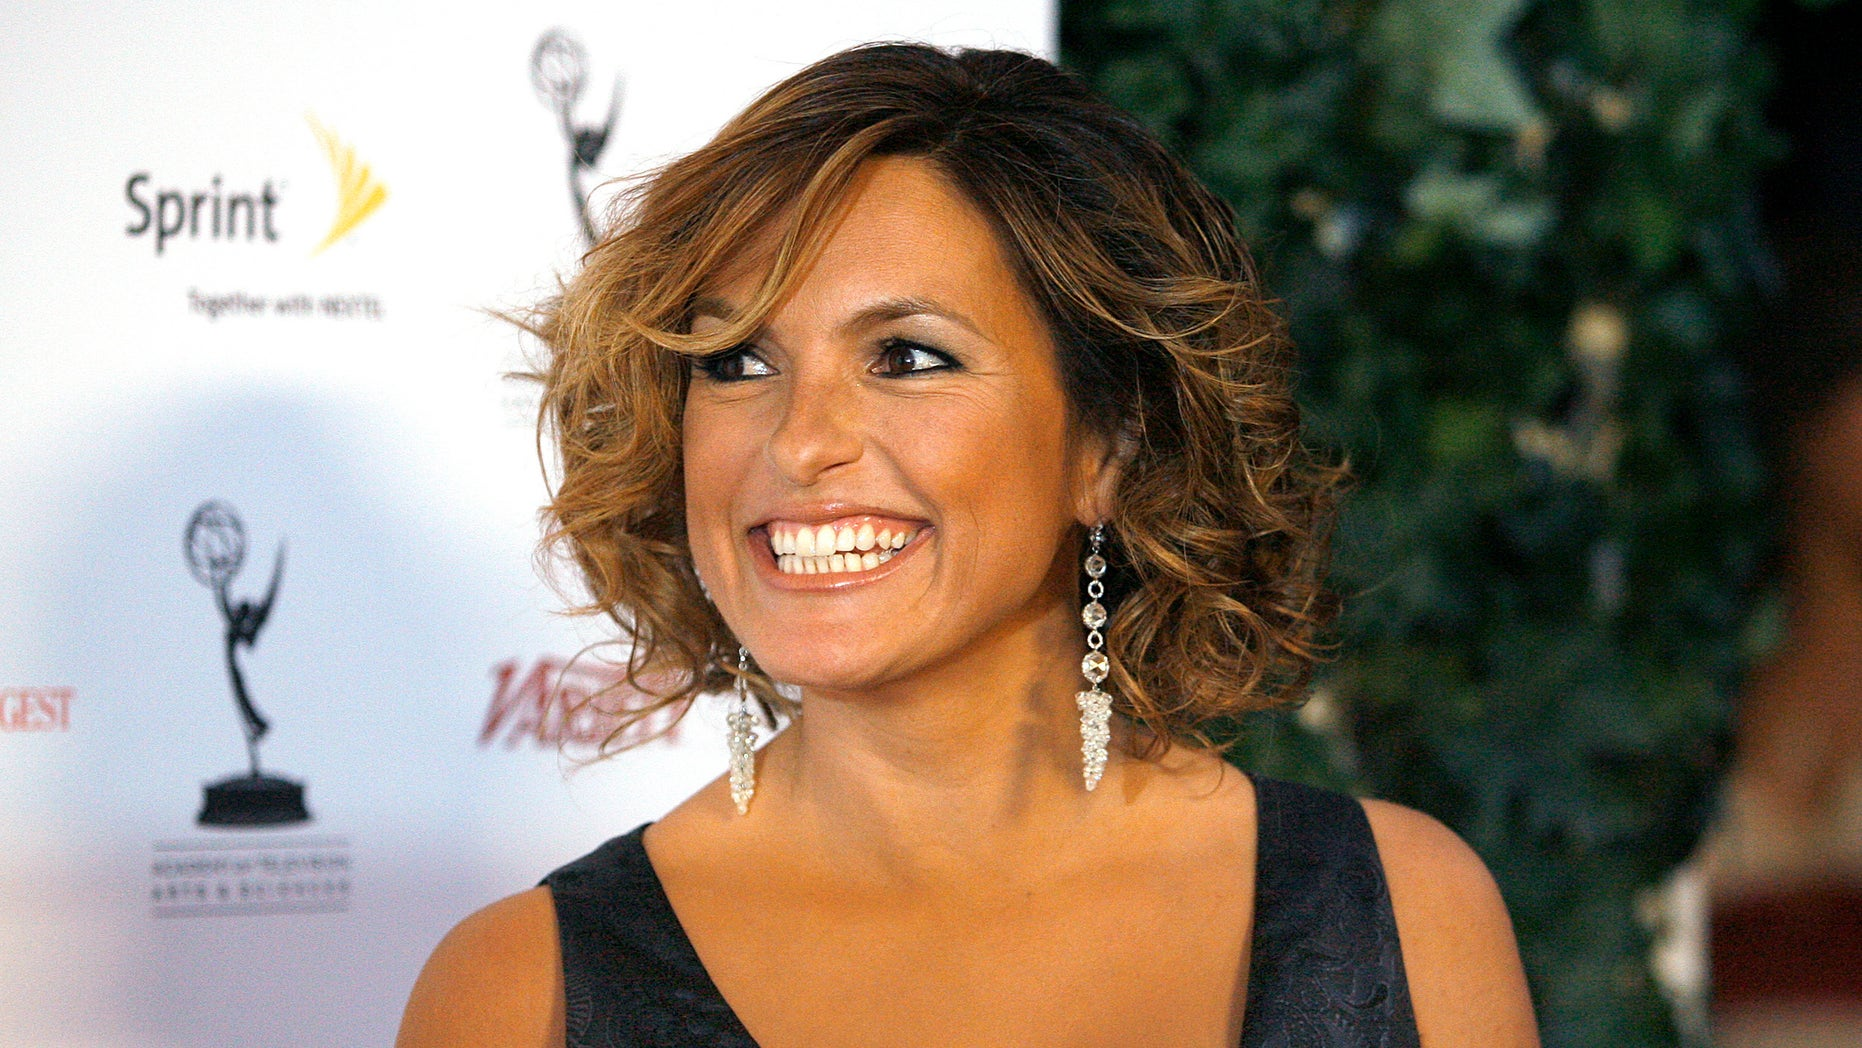 Actress Mariska Hargitay smiles at the 58th annual Primetime Emmy awards nominees reception for outstanding performing talent in West Hollywood August 25, 2006. REUTERS/Mario Anzuoni  (UNITED STATES) - RTR1GP5S